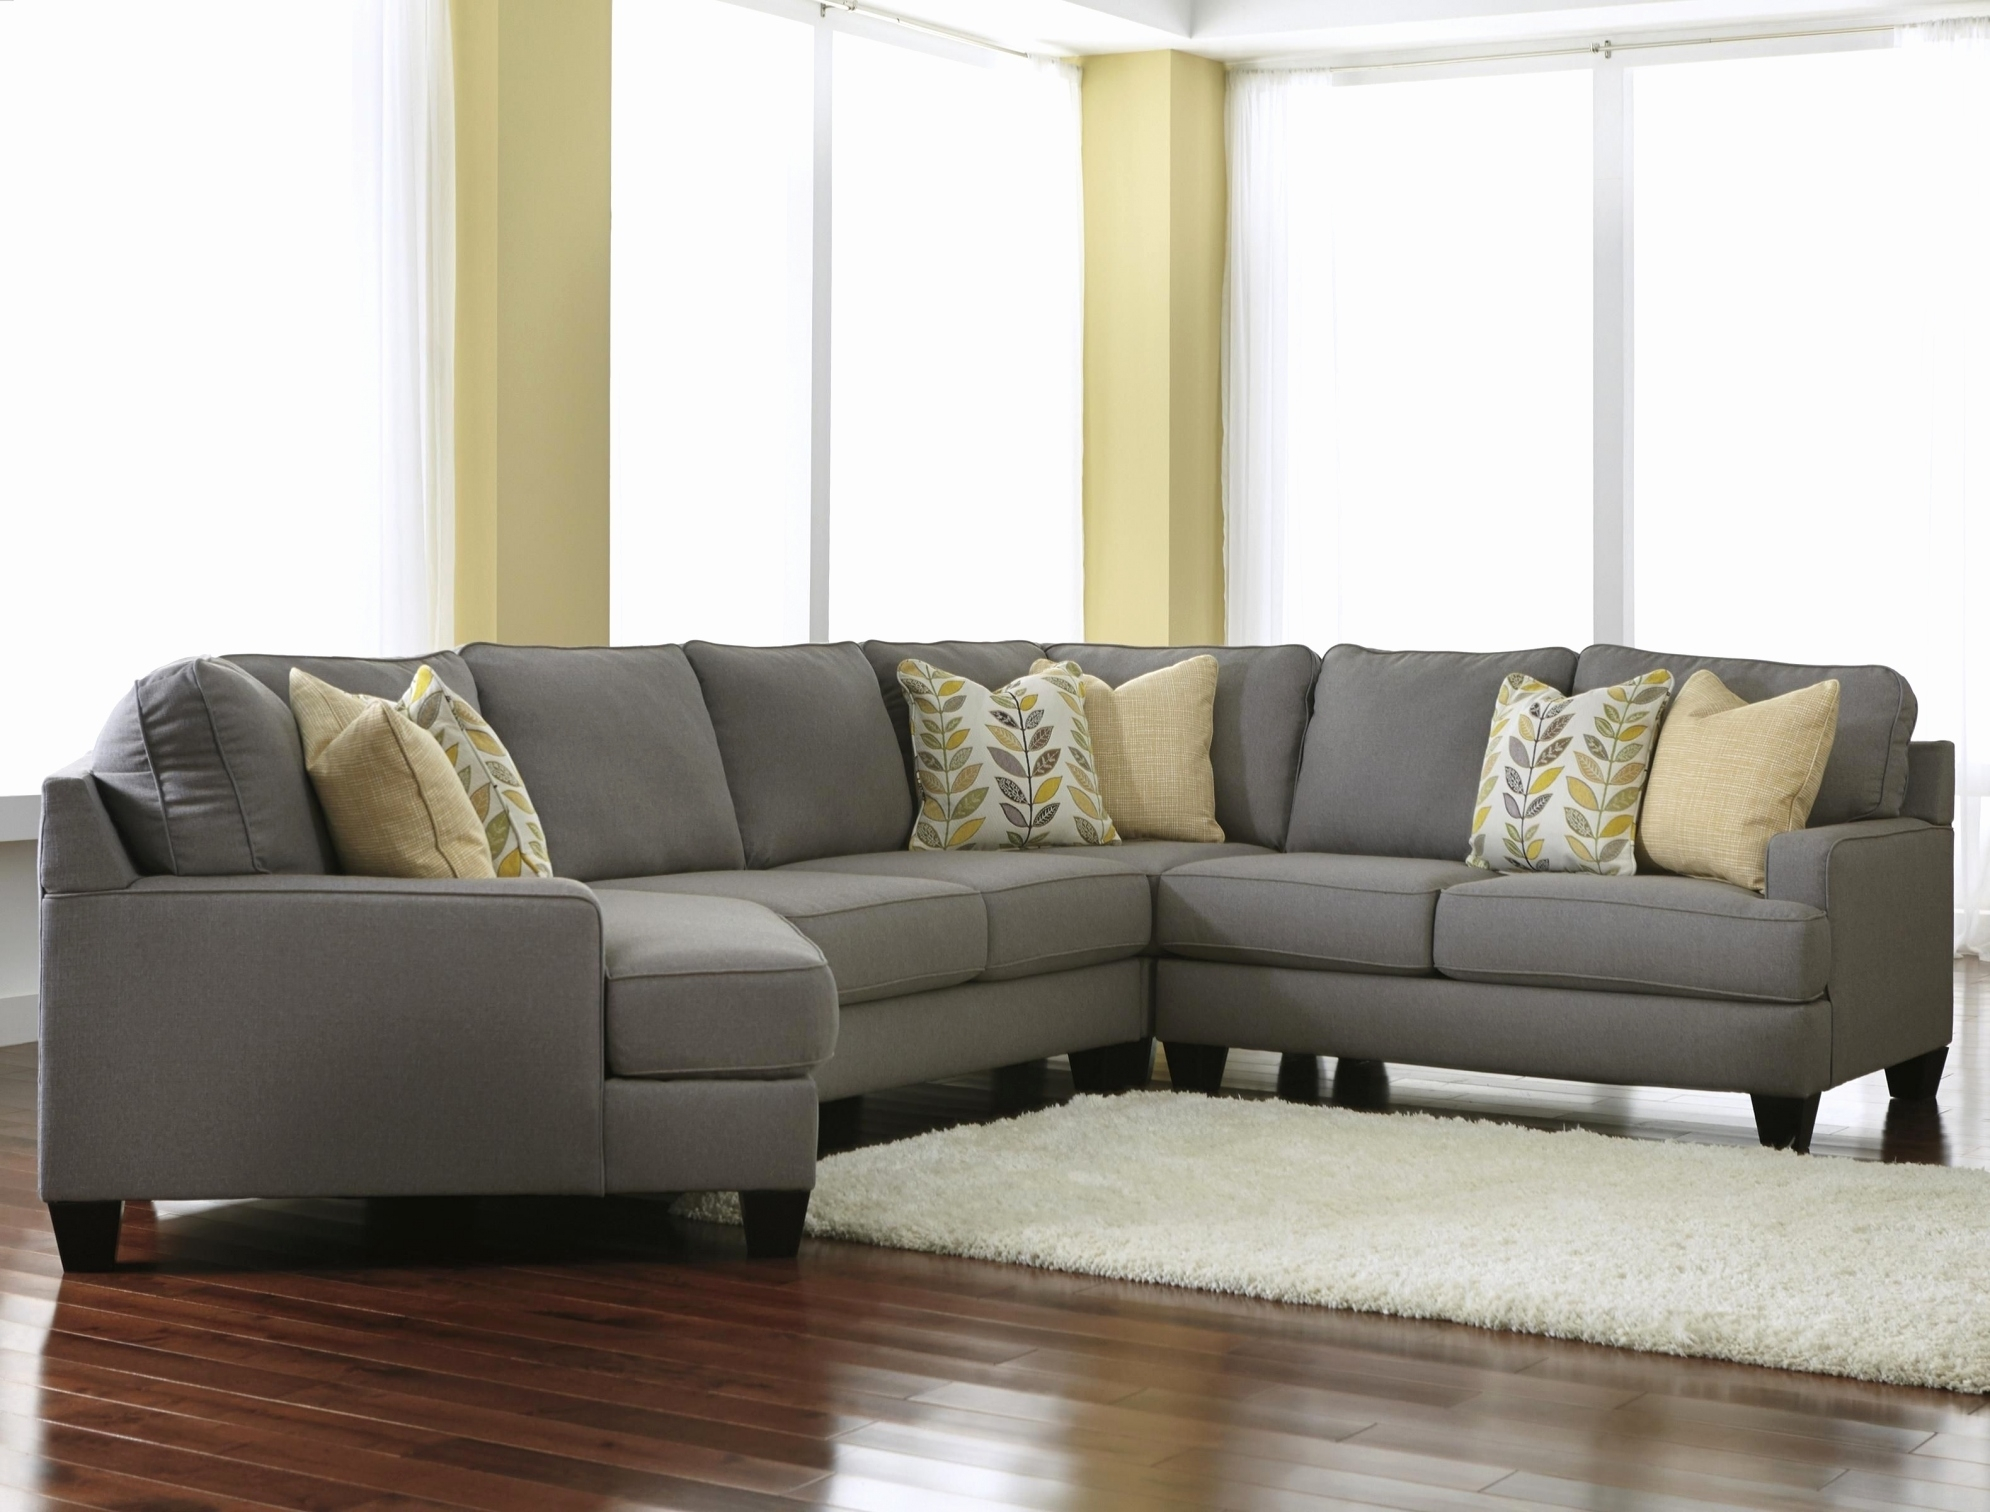 Art Van Sectionals Adorable Fallsworth Smoke Laf Sectional Lyndsey Inside Sectional Sofas Art Van (Image 2 of 10)